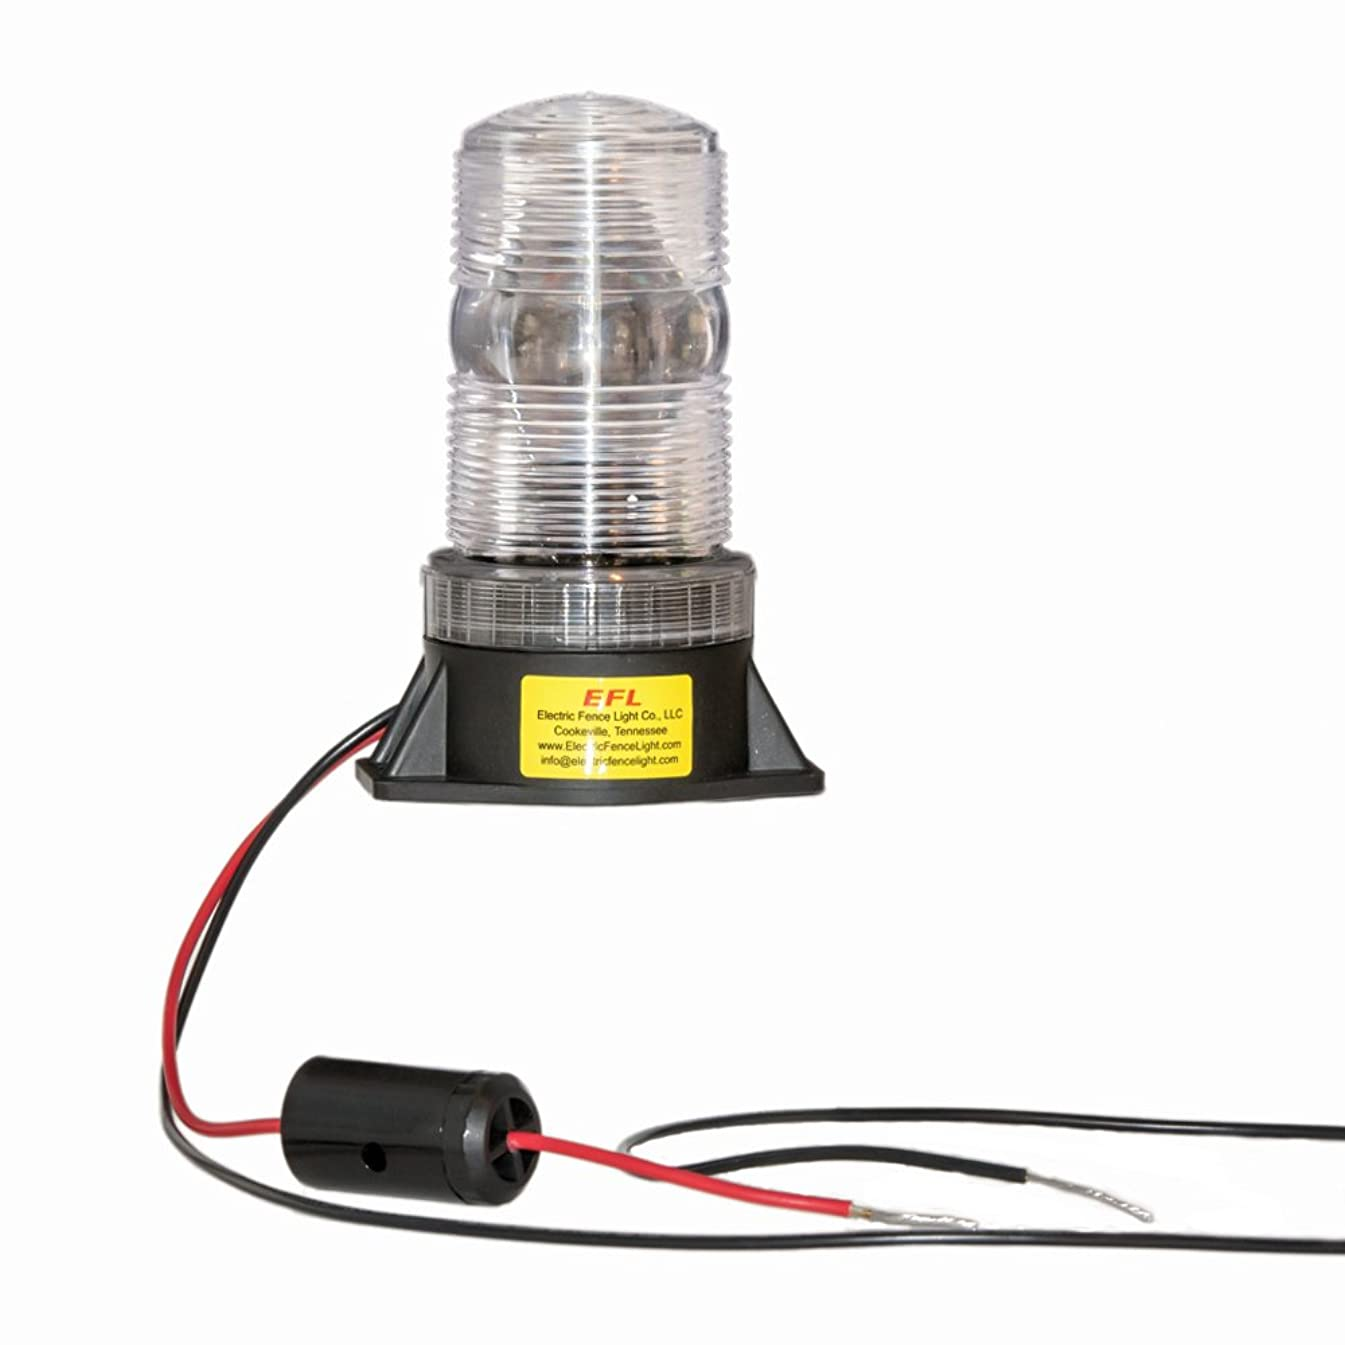 EFL Electric Fence Light Z-Bulb Plus